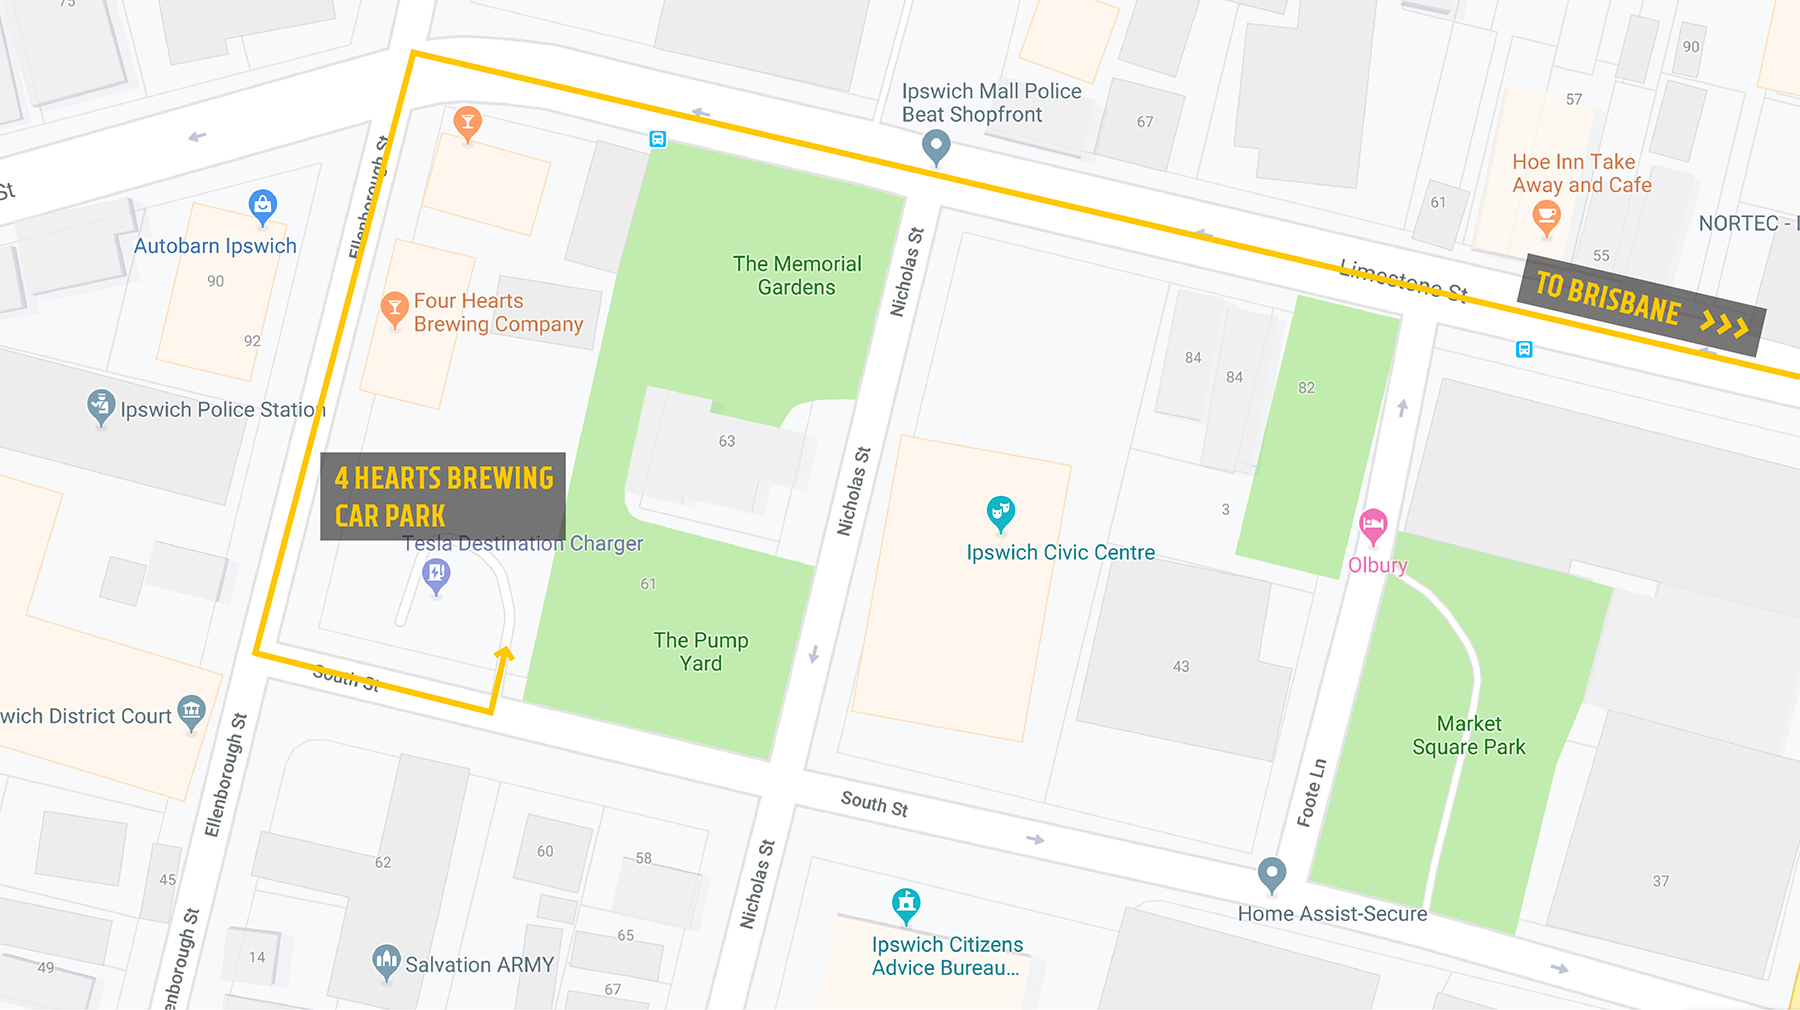 parking directions via south street entrance 4 hearts